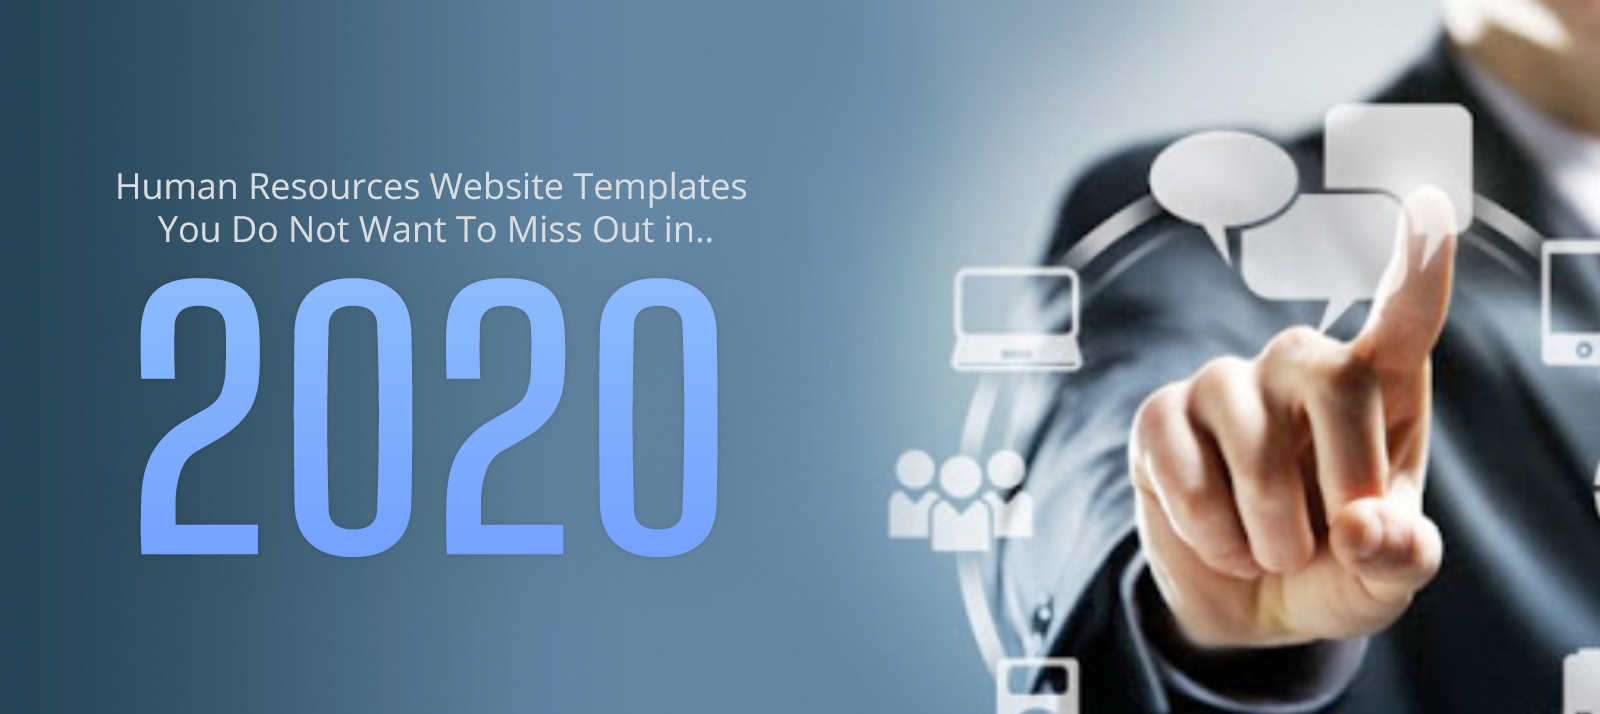 Top 10 Human Resources Website Templates You Do Not Want To Miss Out in 2020